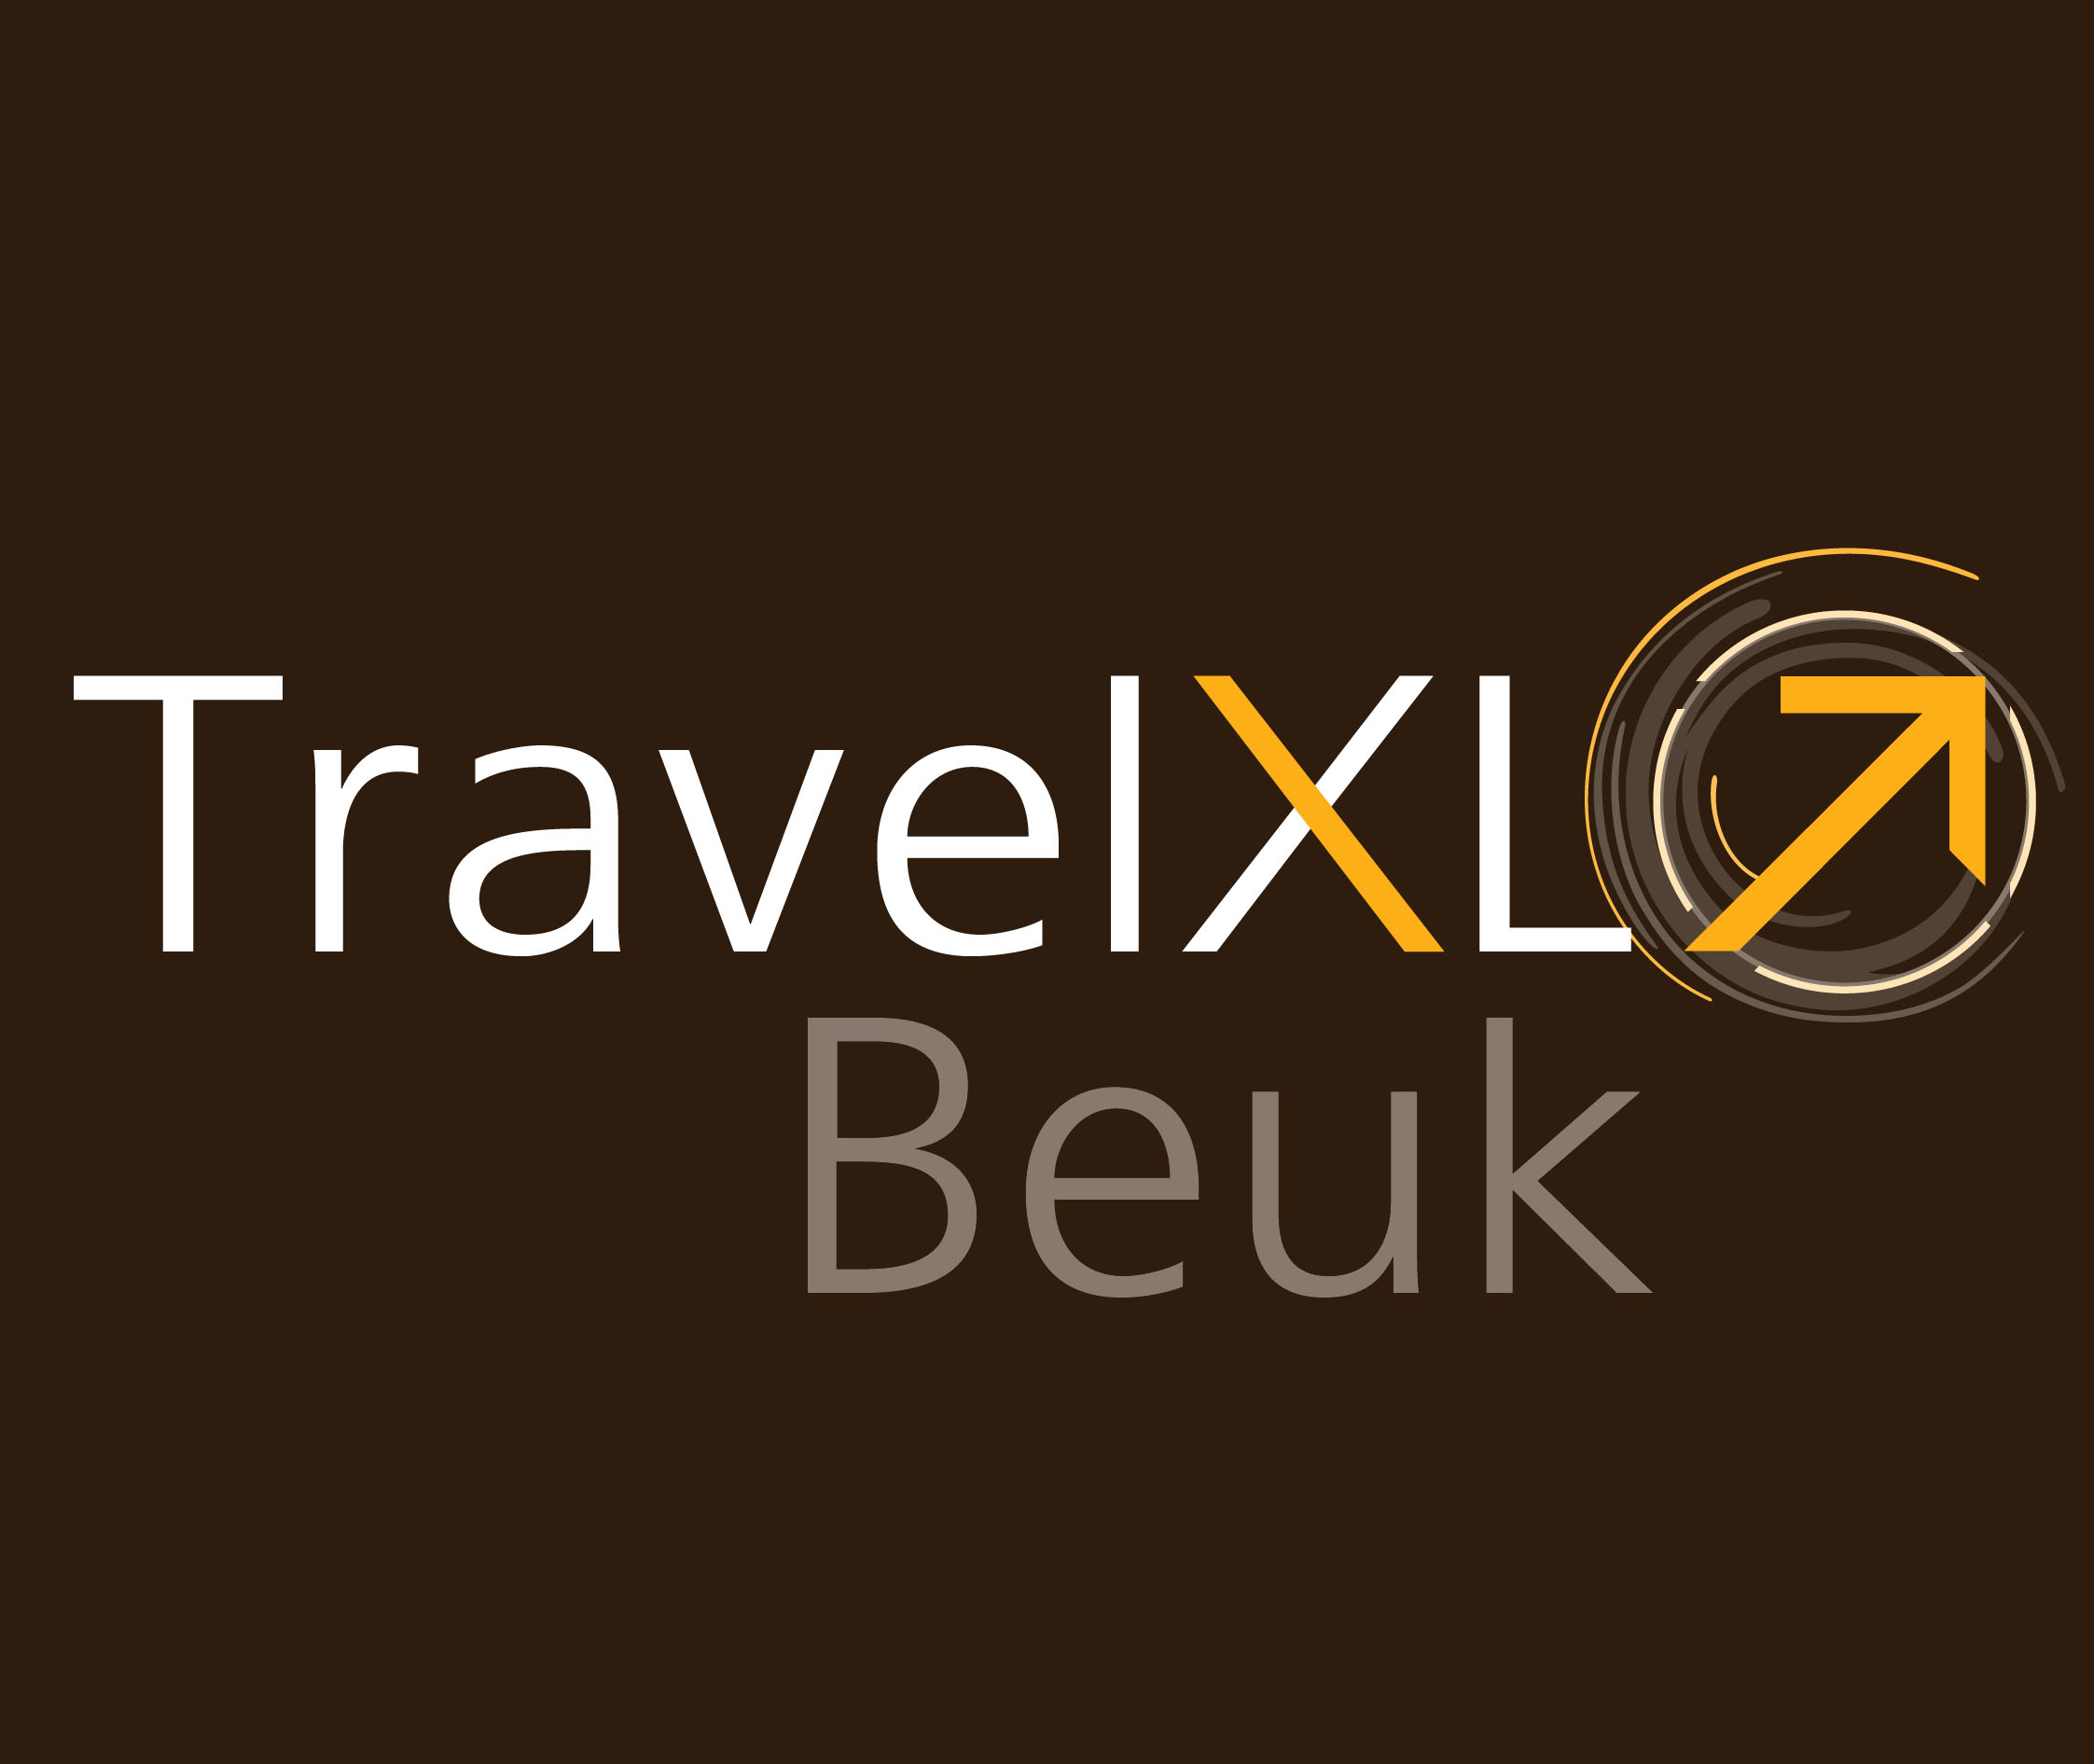 Travel XL Beuk